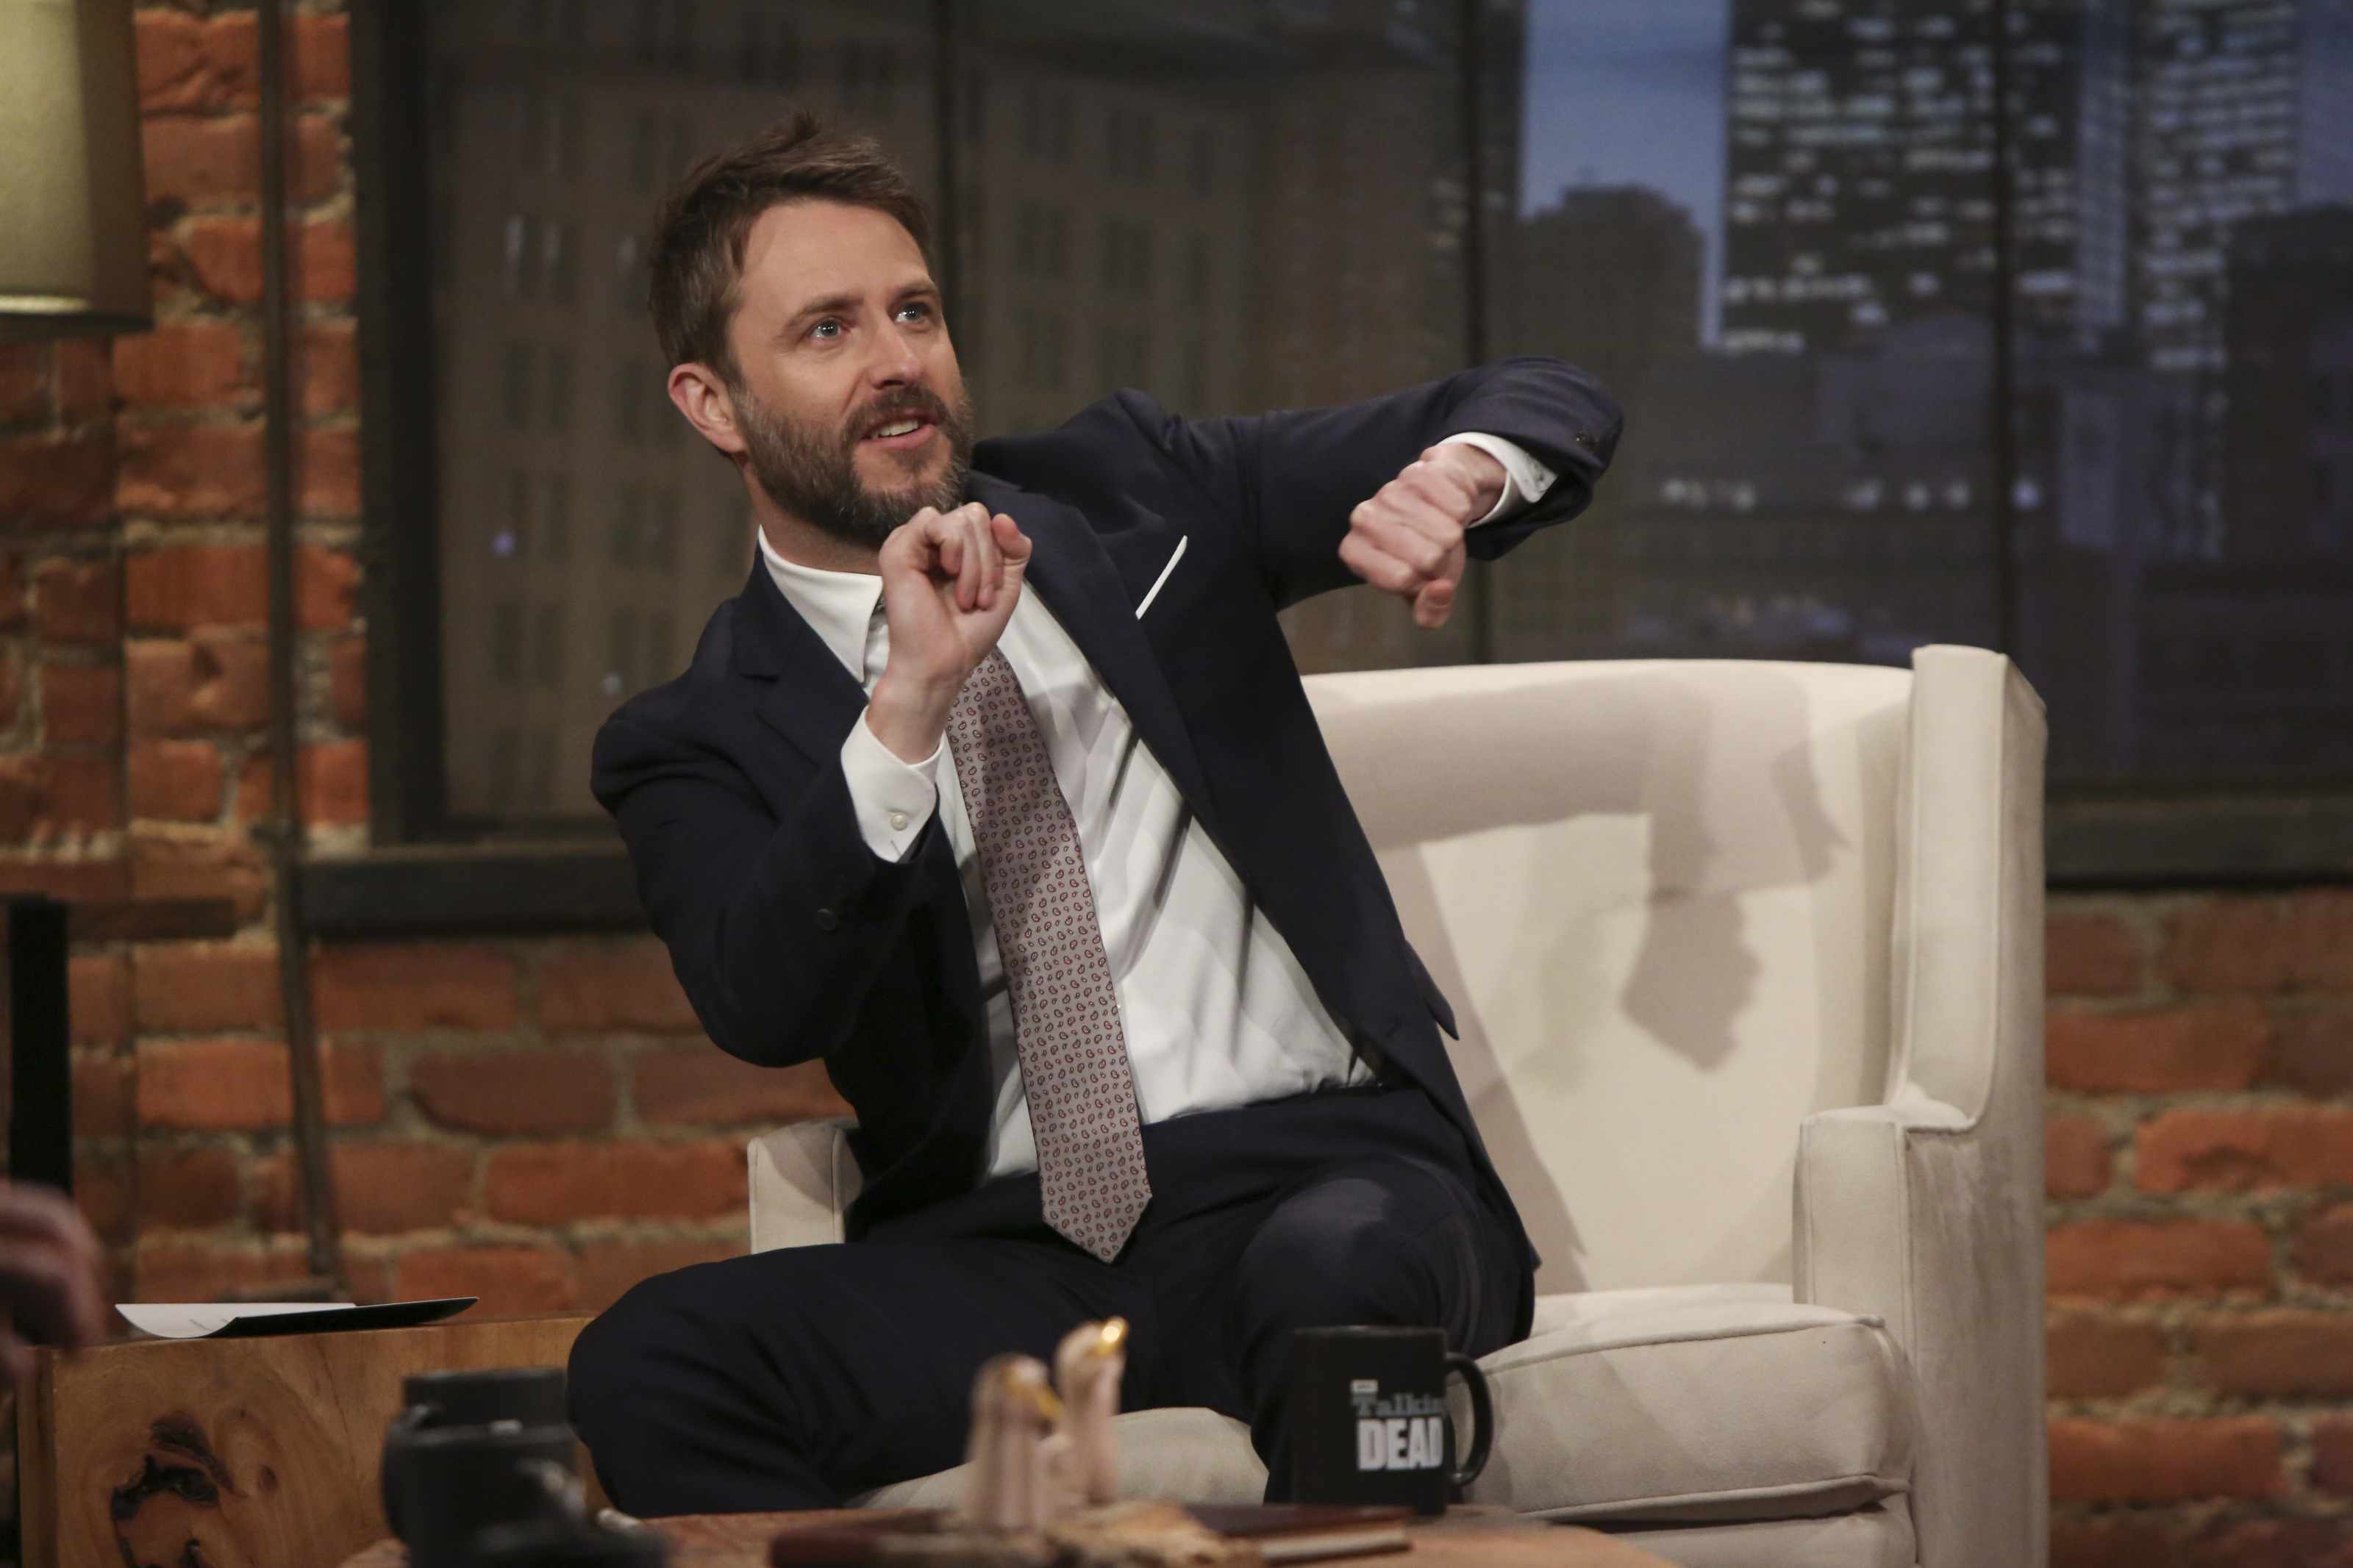 Talking Dead guests for The Walking Dead episode 1010 on March 1